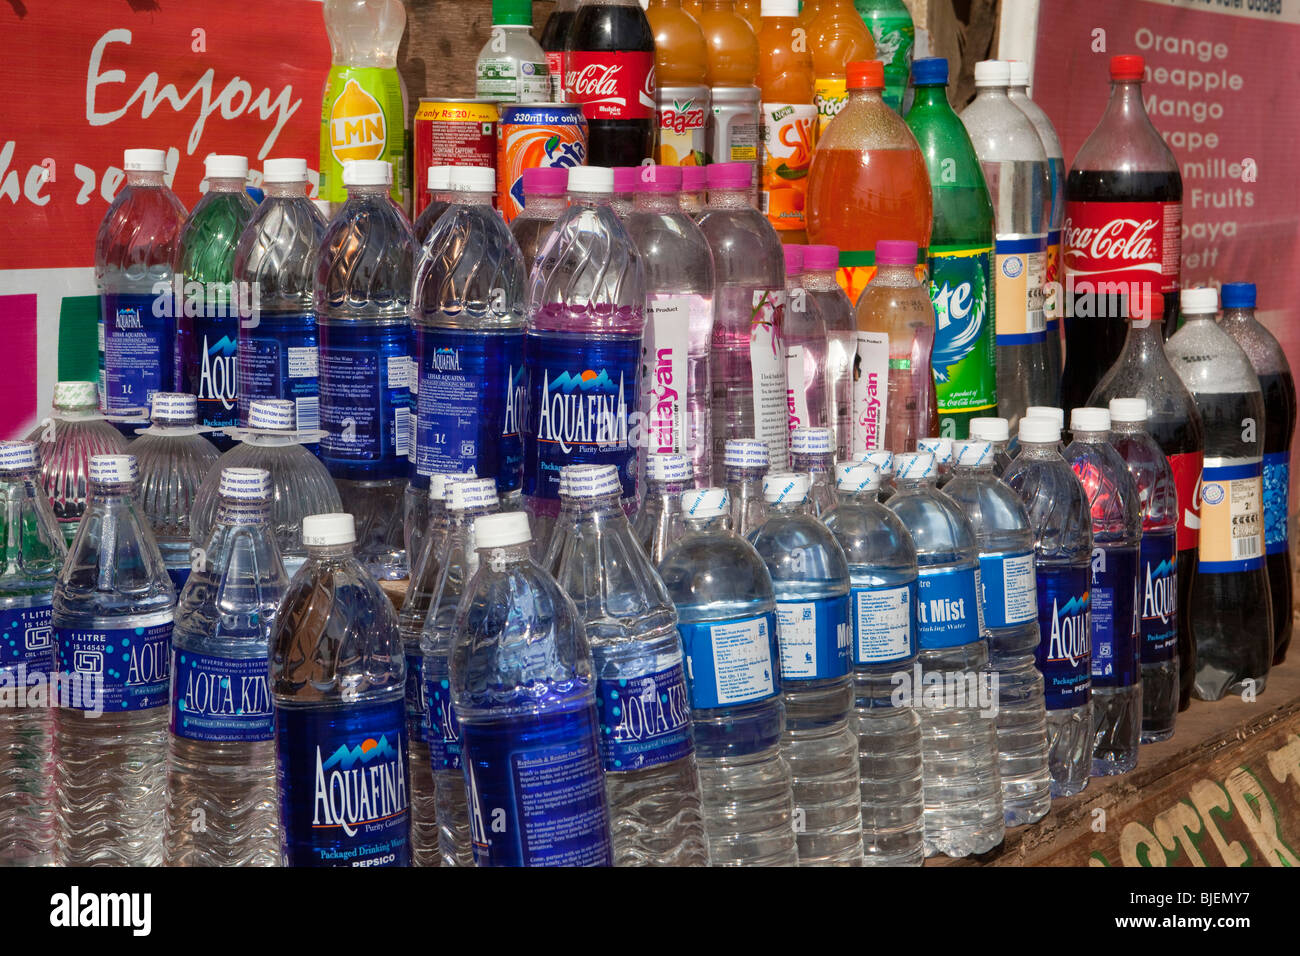 India, Kerala, Varkala, tourist shop selling bottled drinking water and soft drinks in plastic bottles Stock Photo